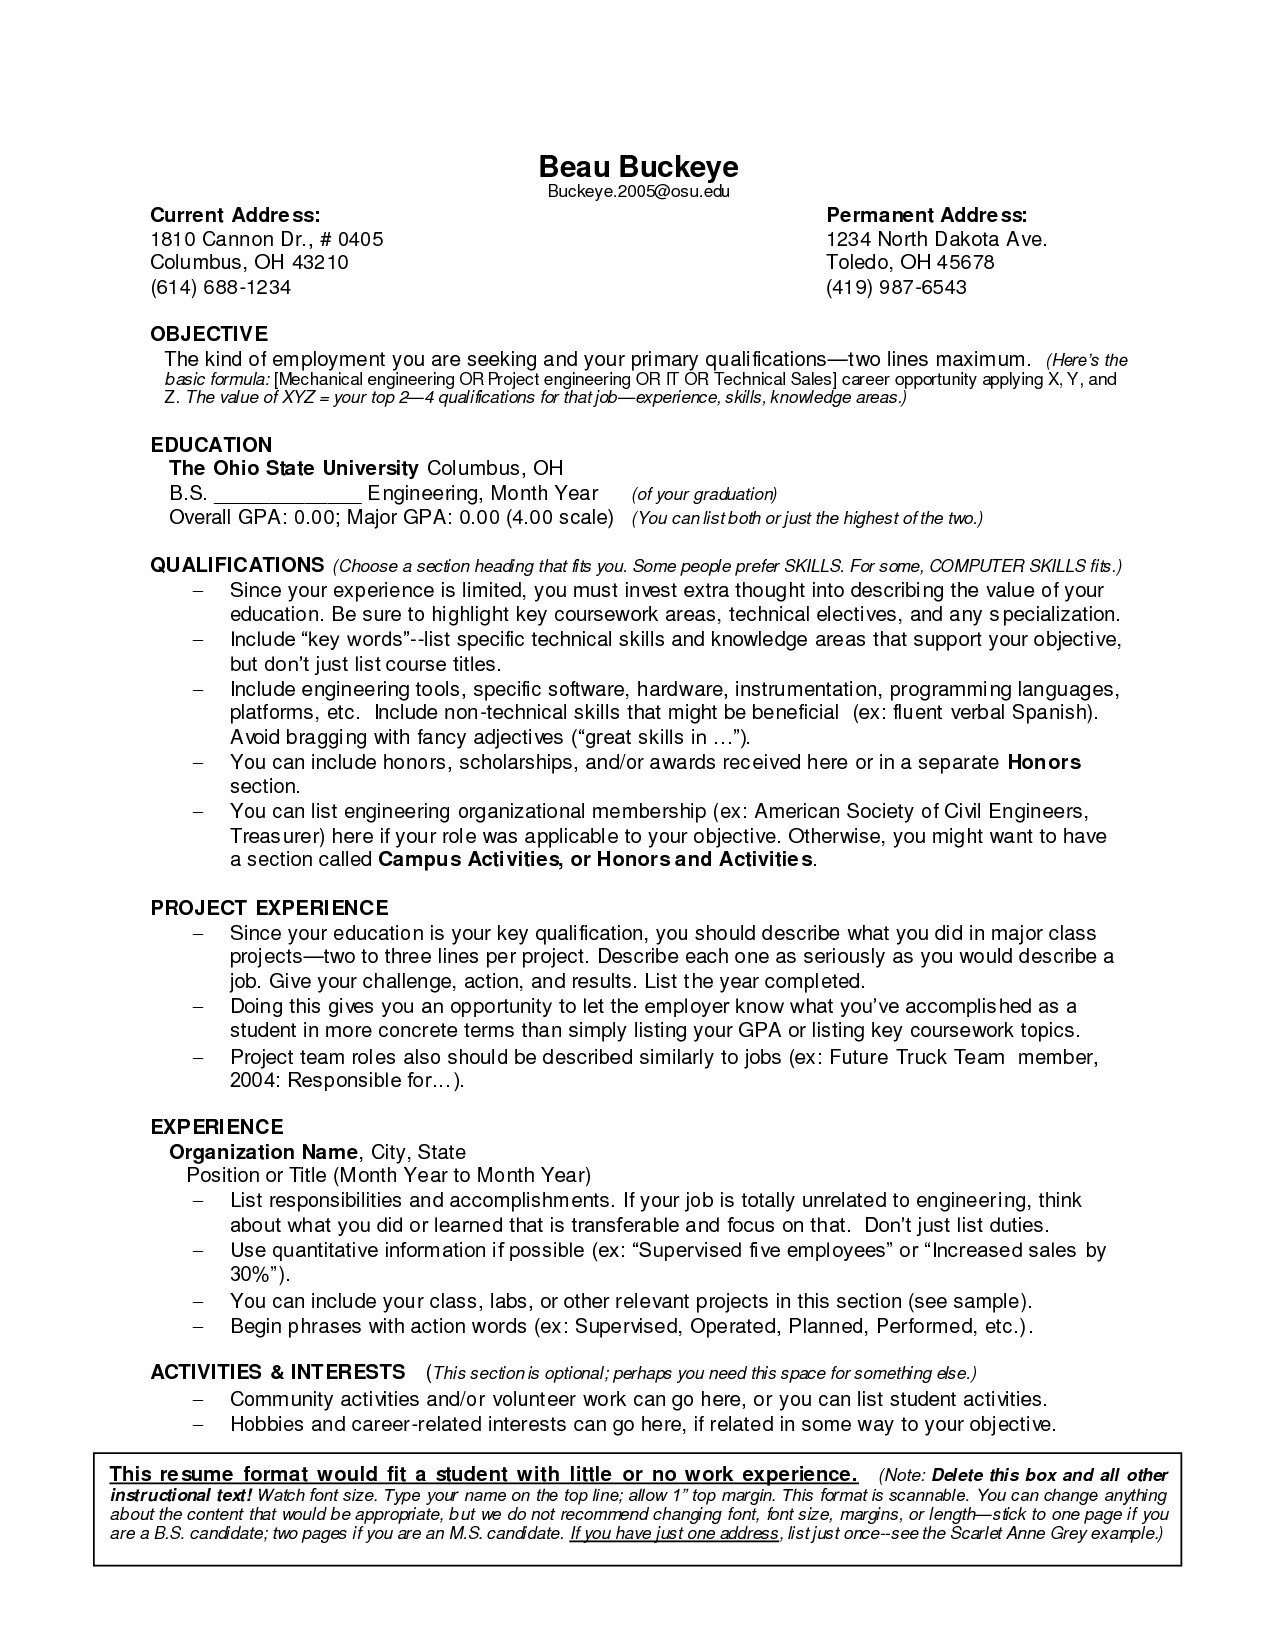 professional summary for resume no work experience Collection-Professional Summary for Resume No Work Experience 11-o